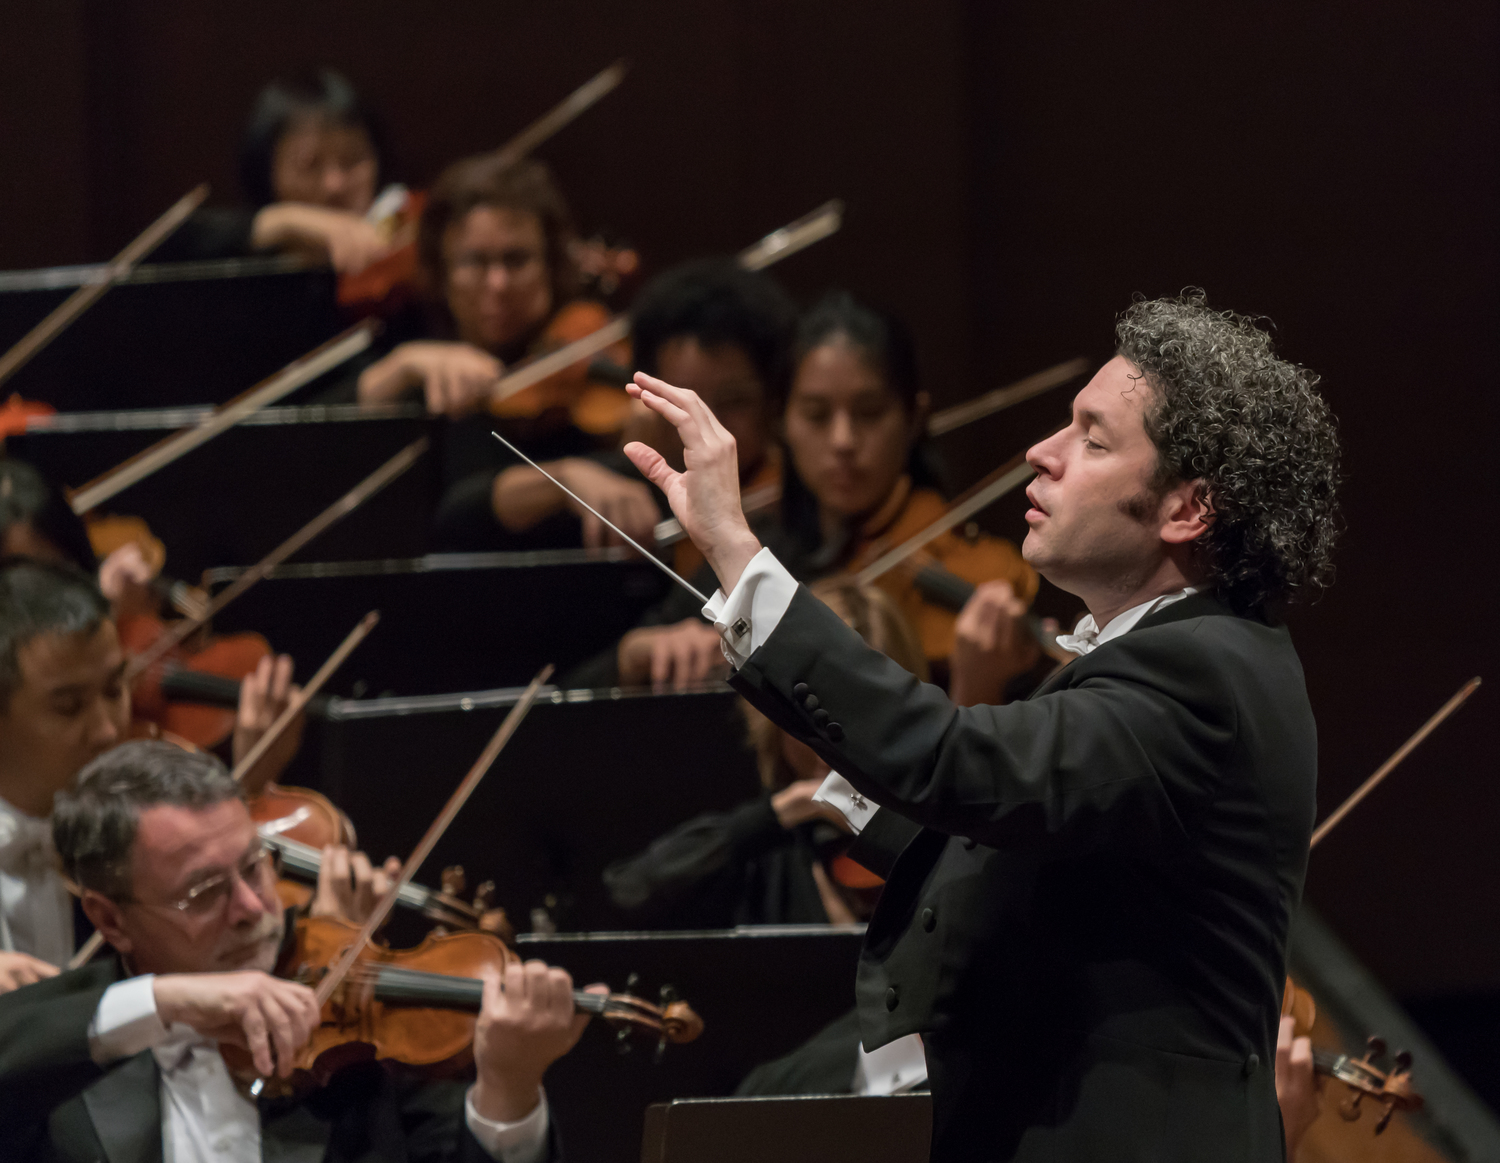 BWW Review: DUDAMEL AND THE LOS ANGELES PHILHARMONIC at Geffen Hall - First the Dodgers, then the Giants...